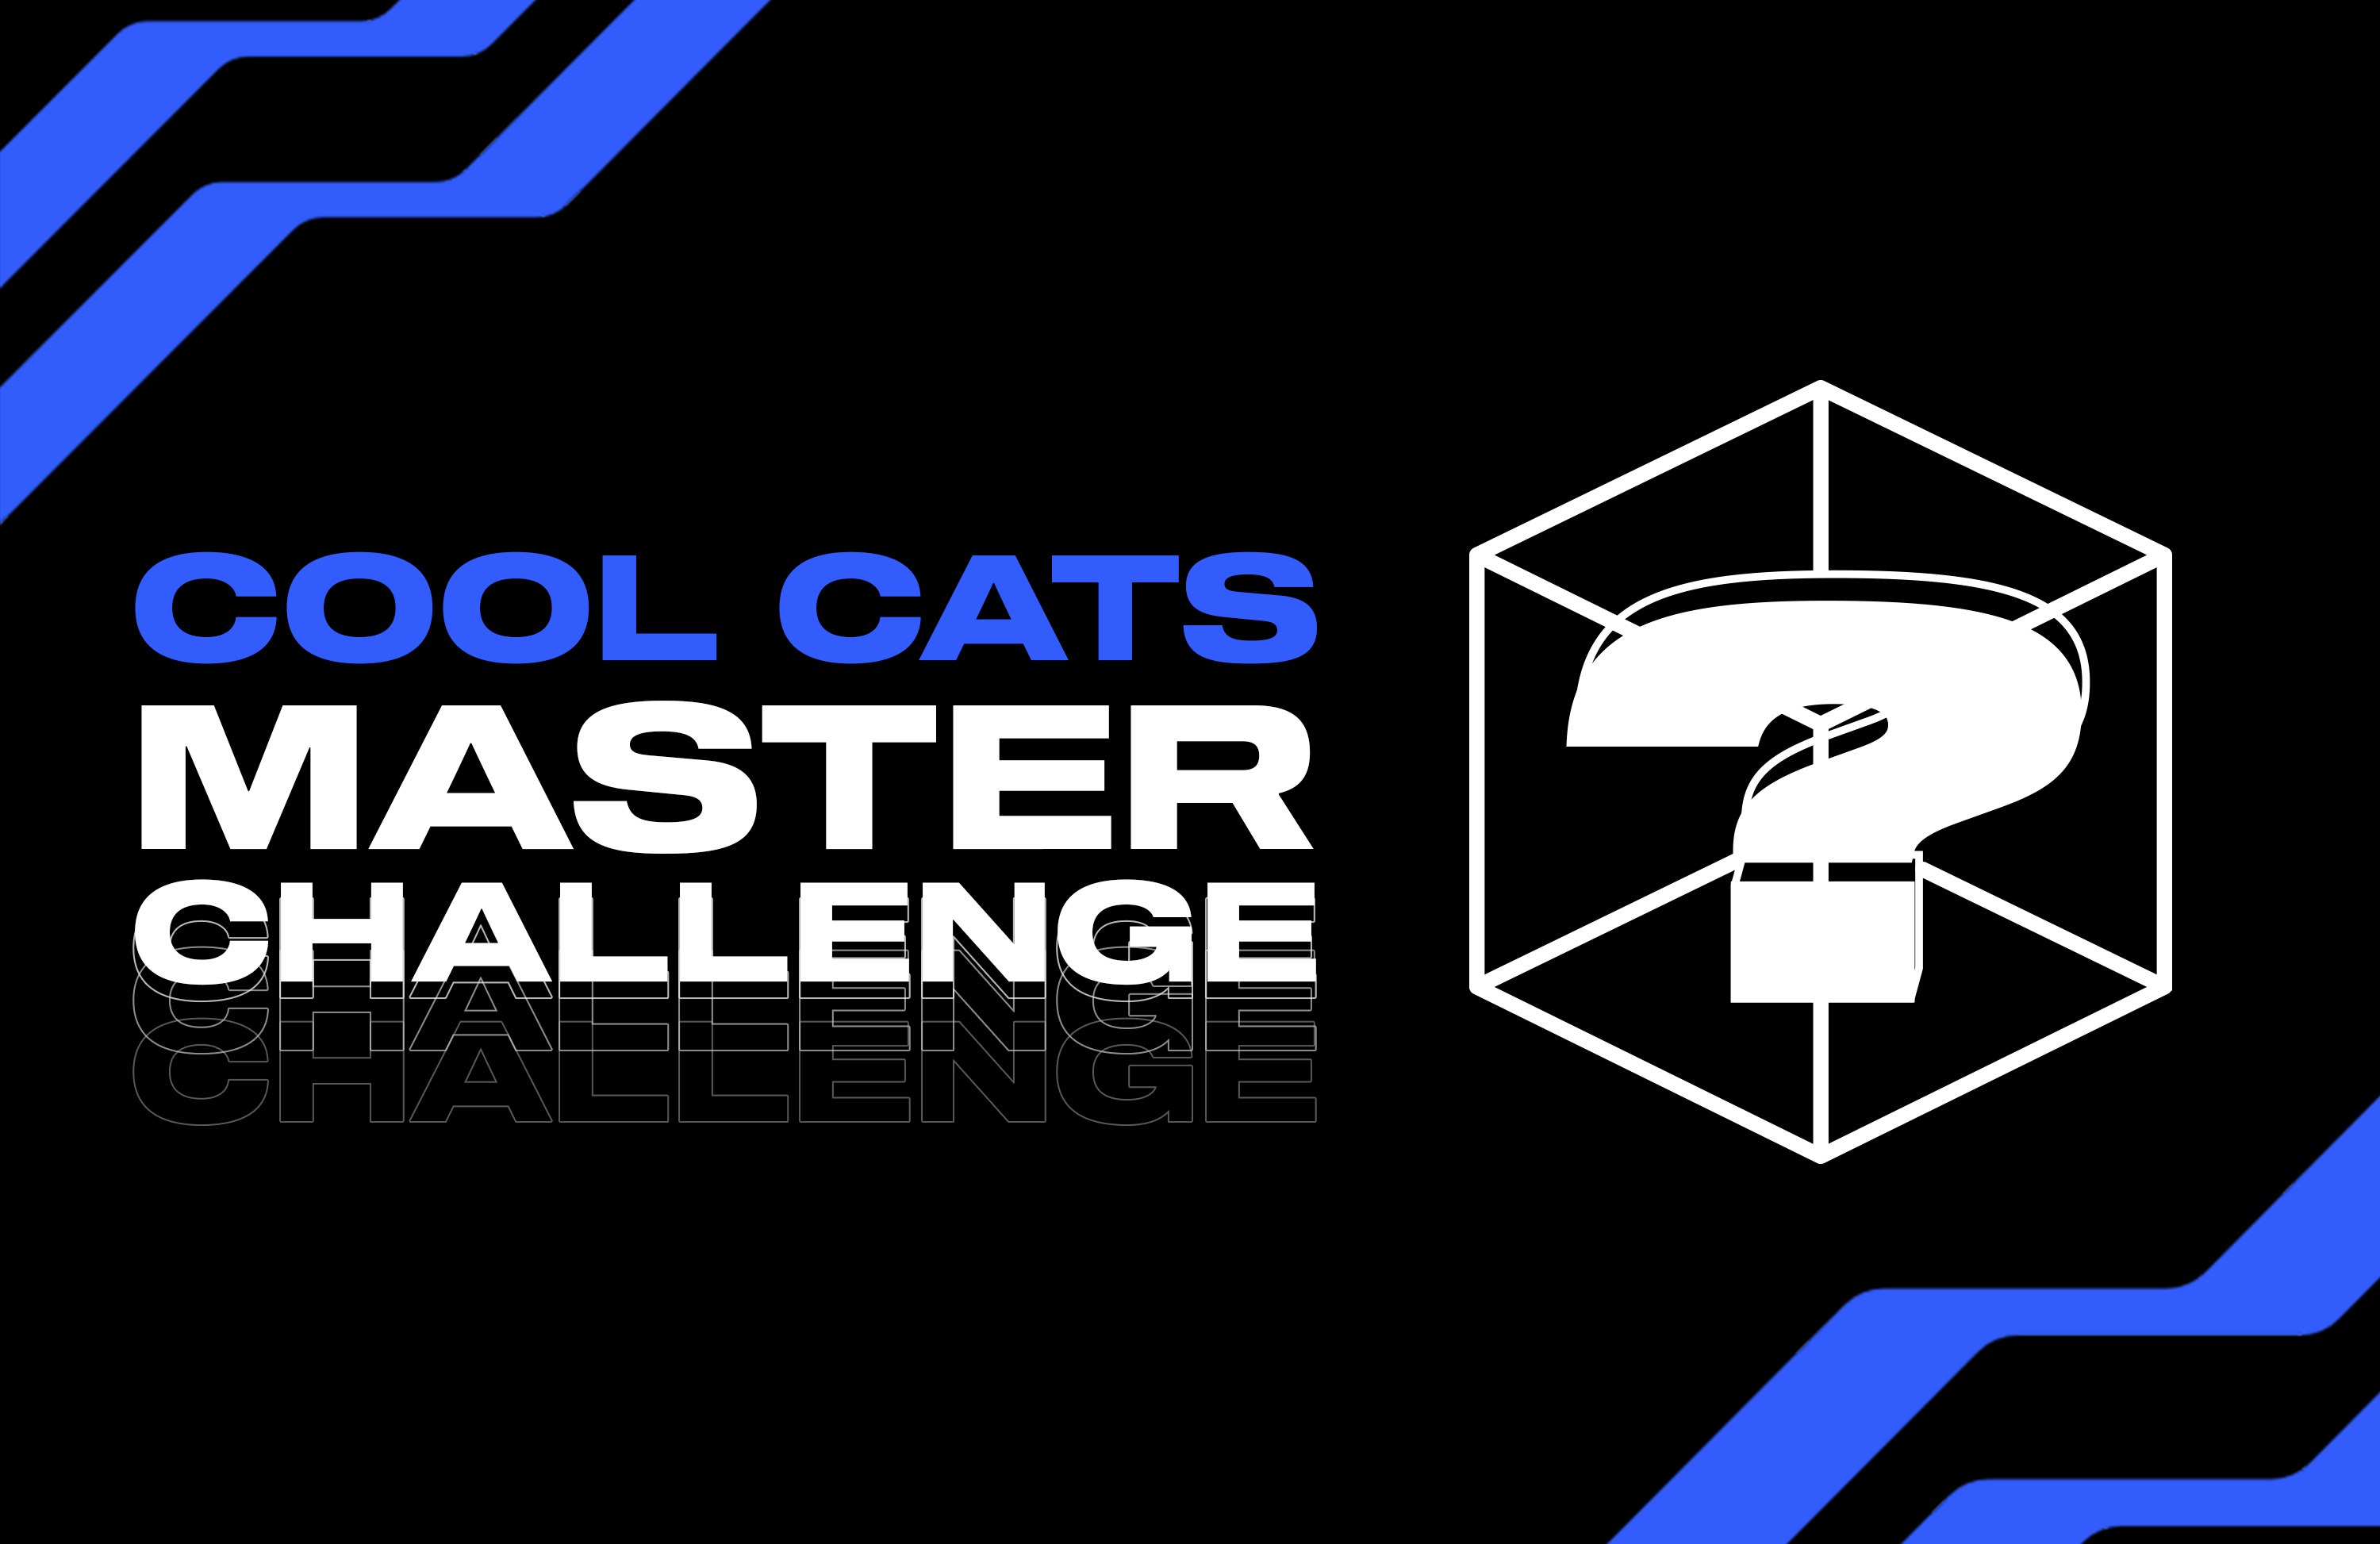 We can confirm: there will be a master challenge related to the Cool Cats set. Read here for more details: